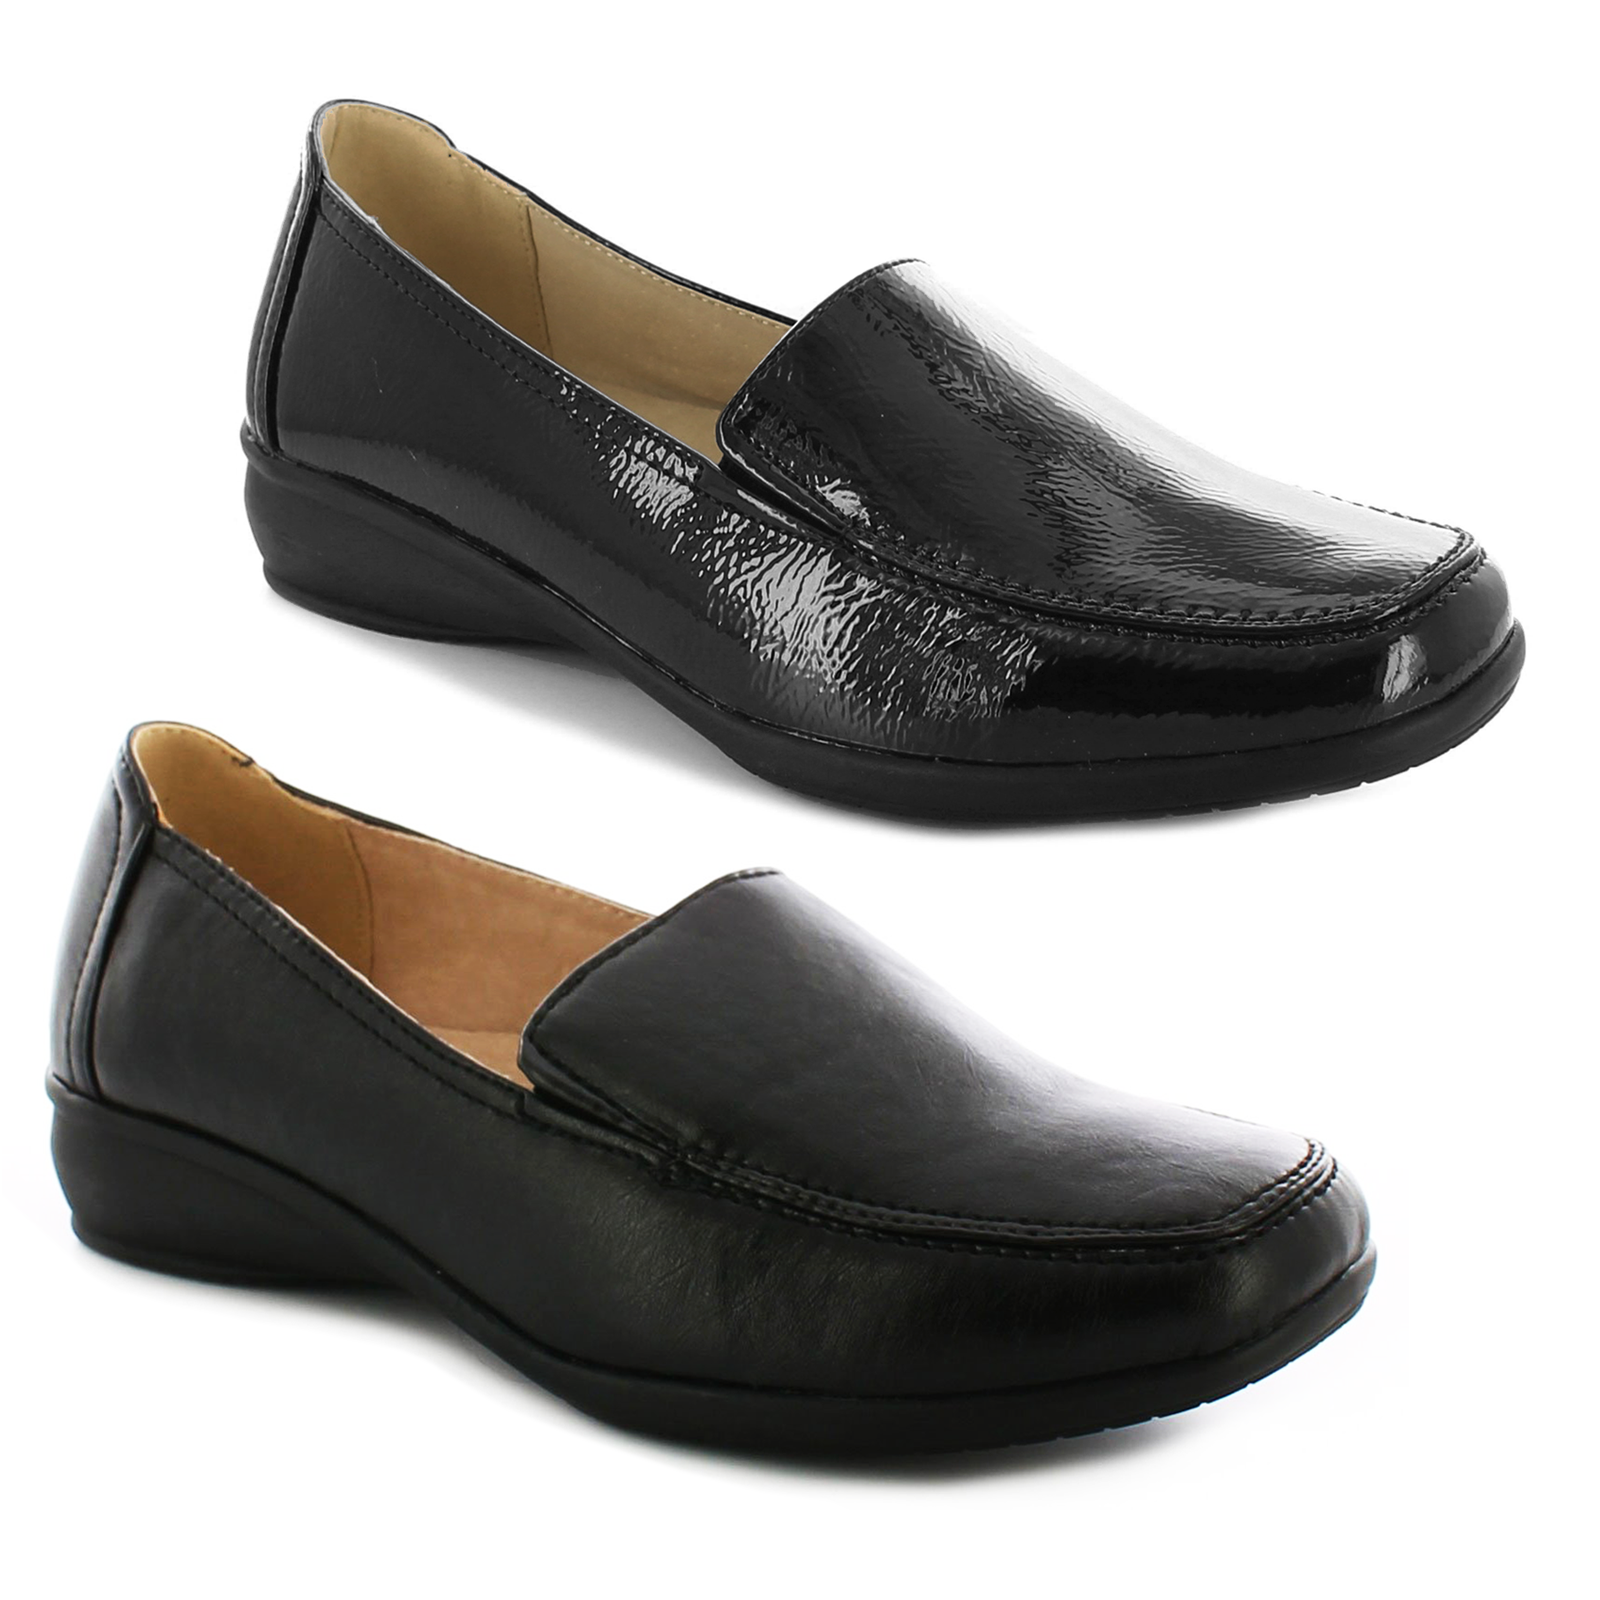 cabbd34bef6 DR KELLER WOMEN S WIDE FIT SALLY SHOES